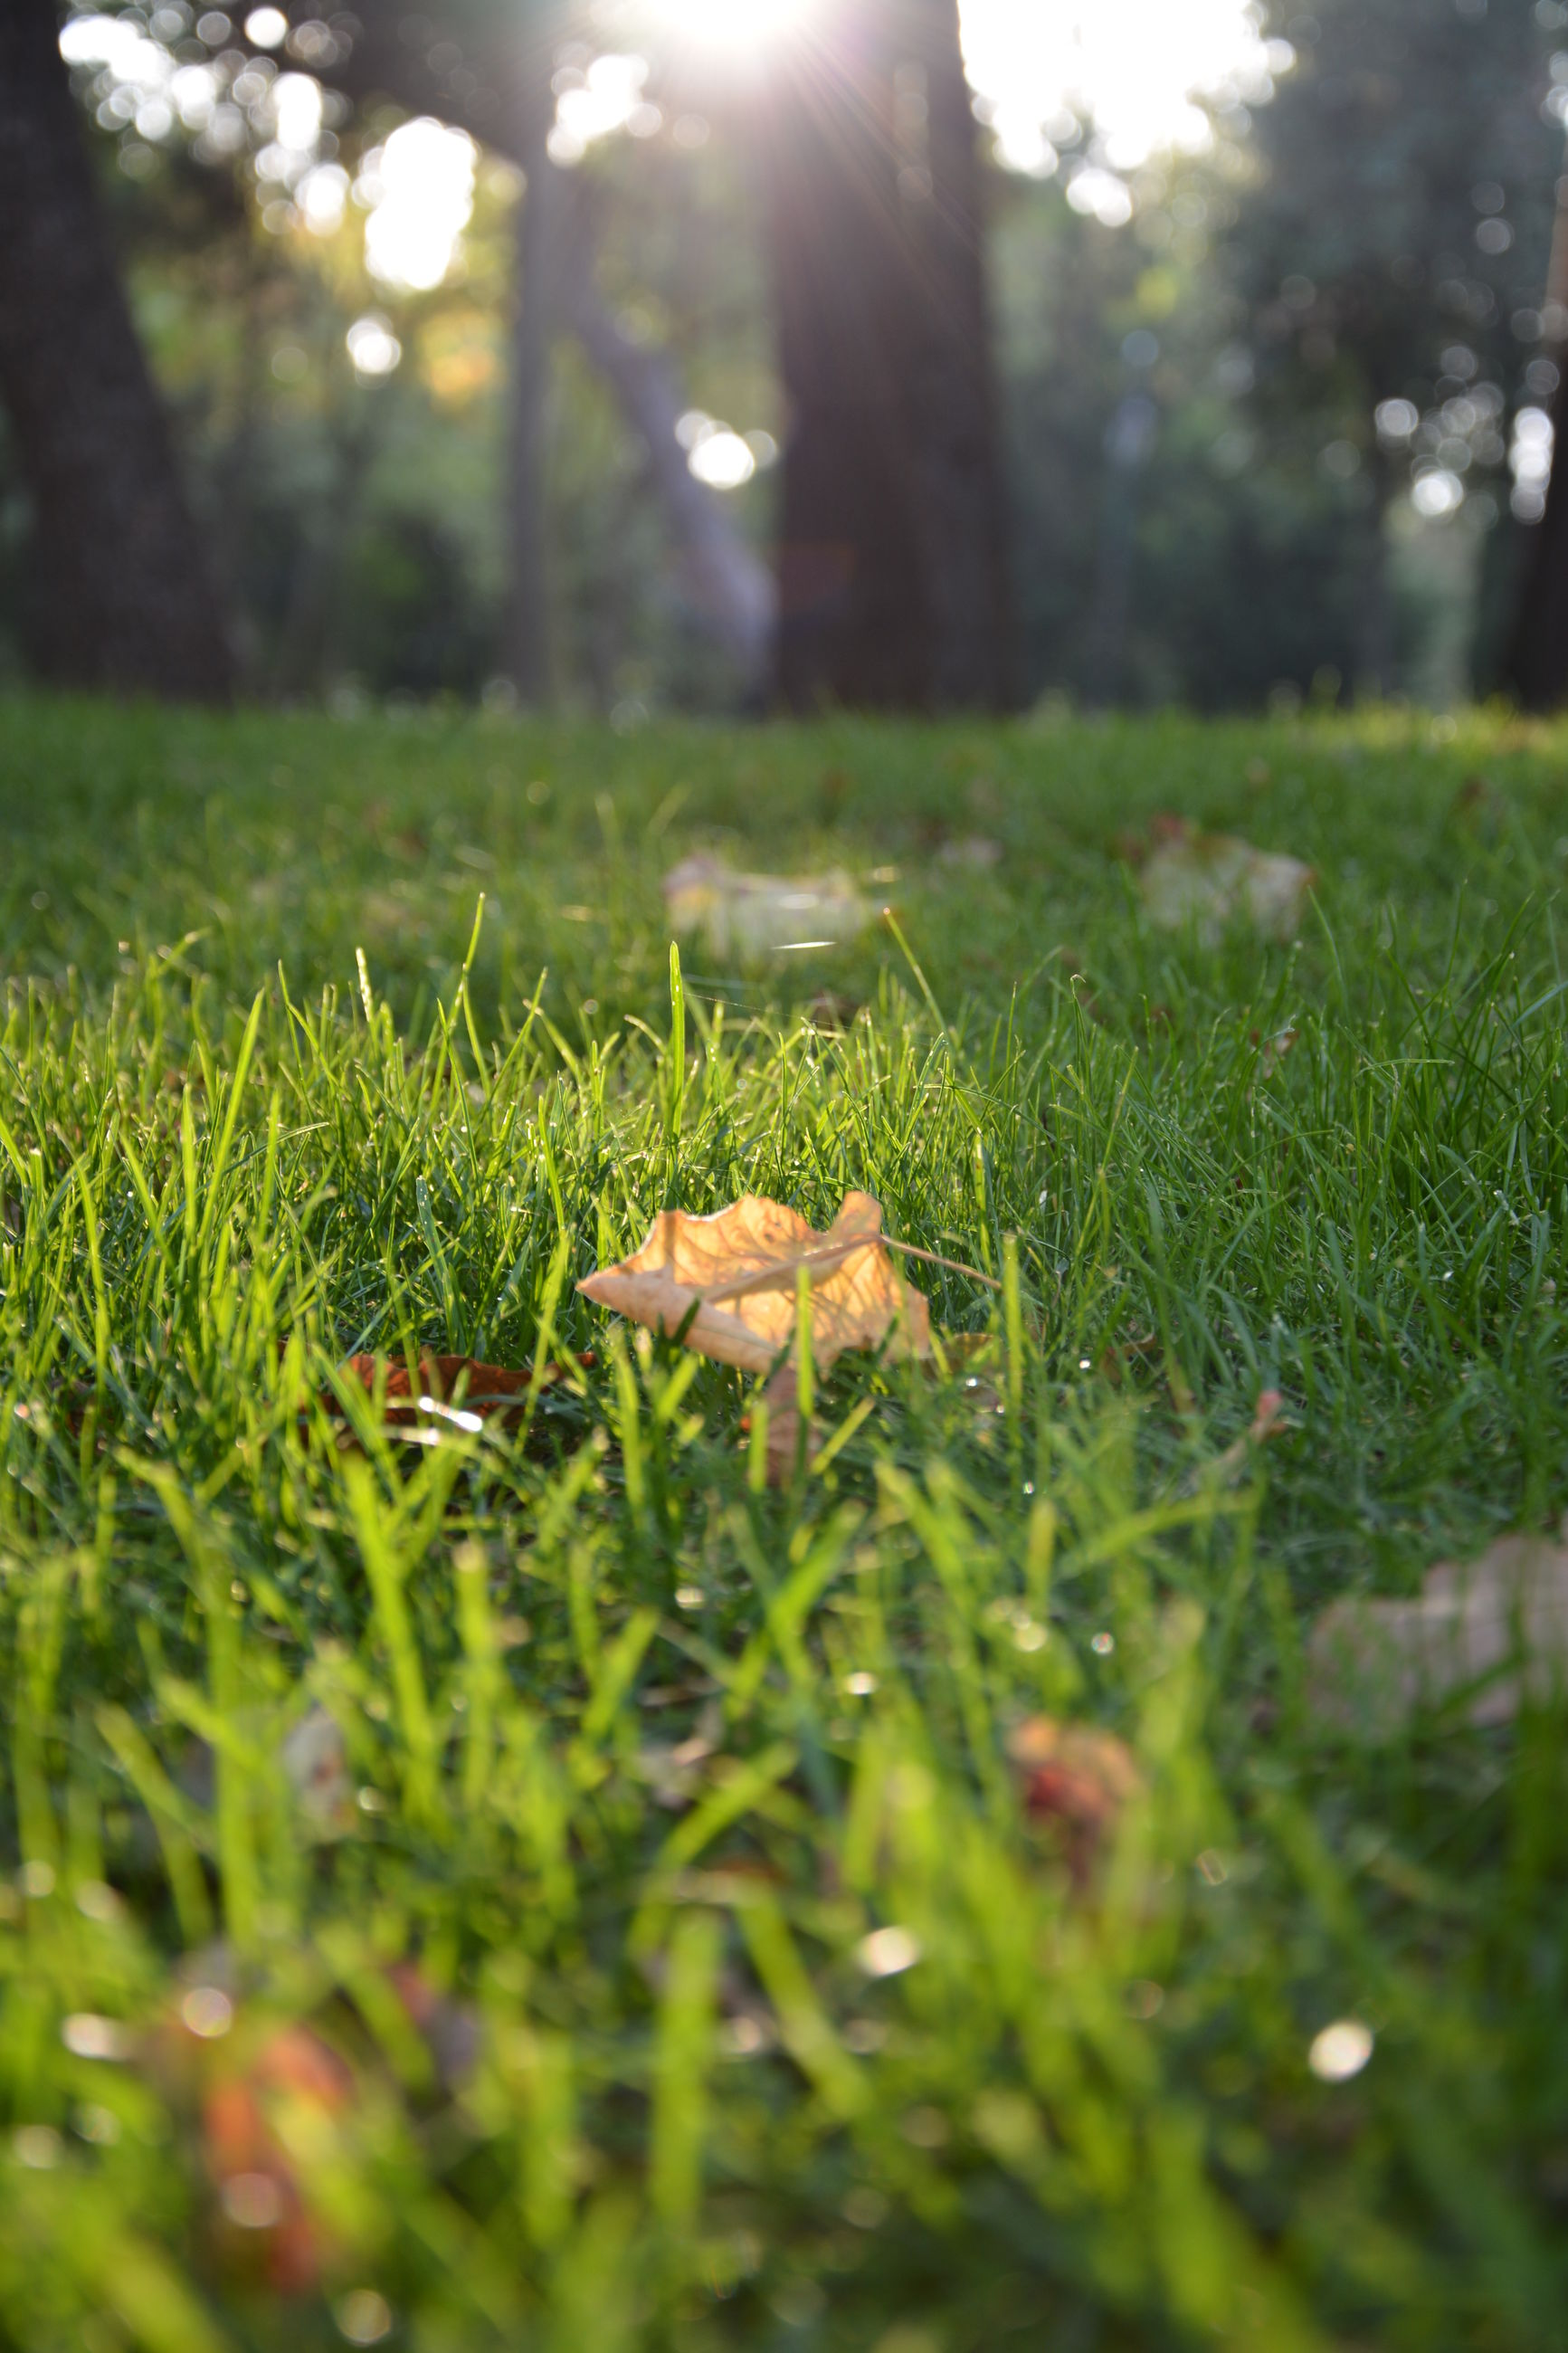 grass, green color, grassy, selective focus, surface level, field, growth, focus on foreground, nature, sunlight, close-up, tranquility, grassland, lawn, blade of grass, plant, day, outdoors, no people, tree